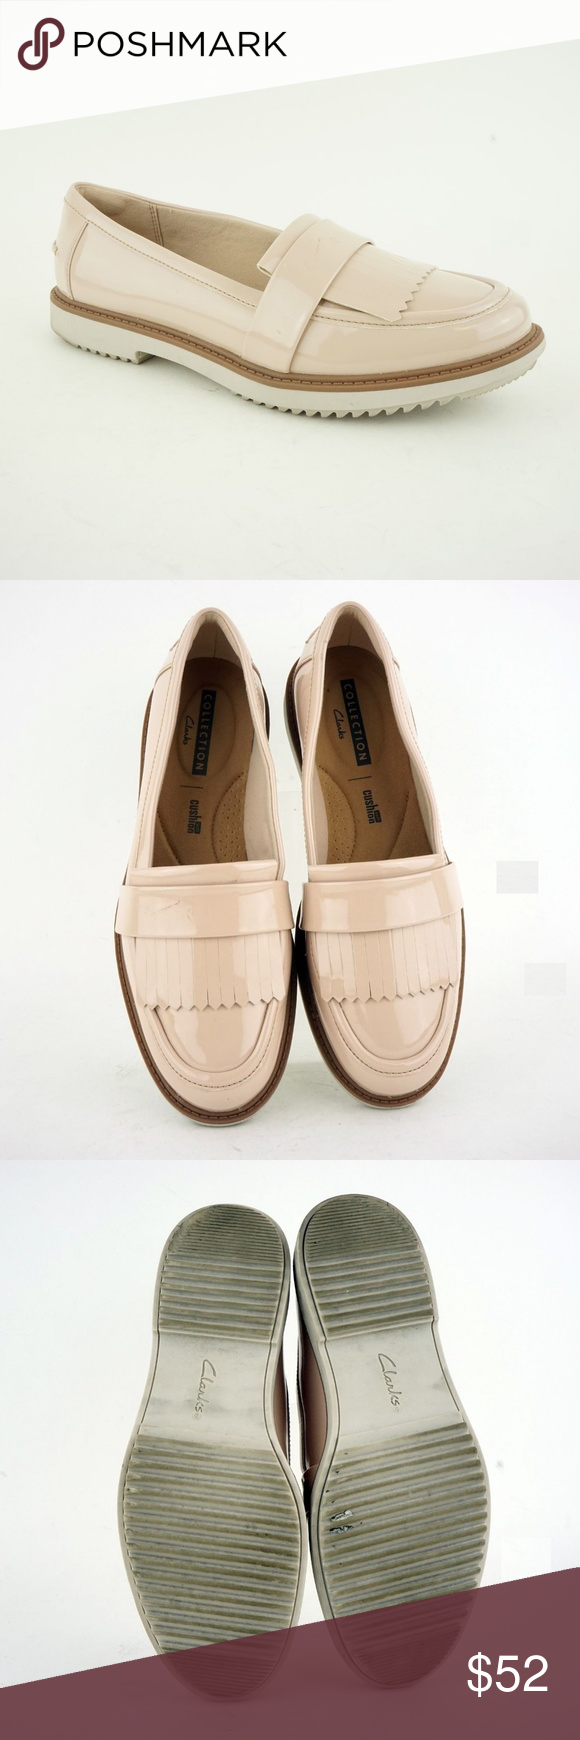 cab3f16a7d1 Clarks Women s Raisie Theresa Loafers Dusty Pink Pre-owned Clarks Women s  (Sz 7.5)